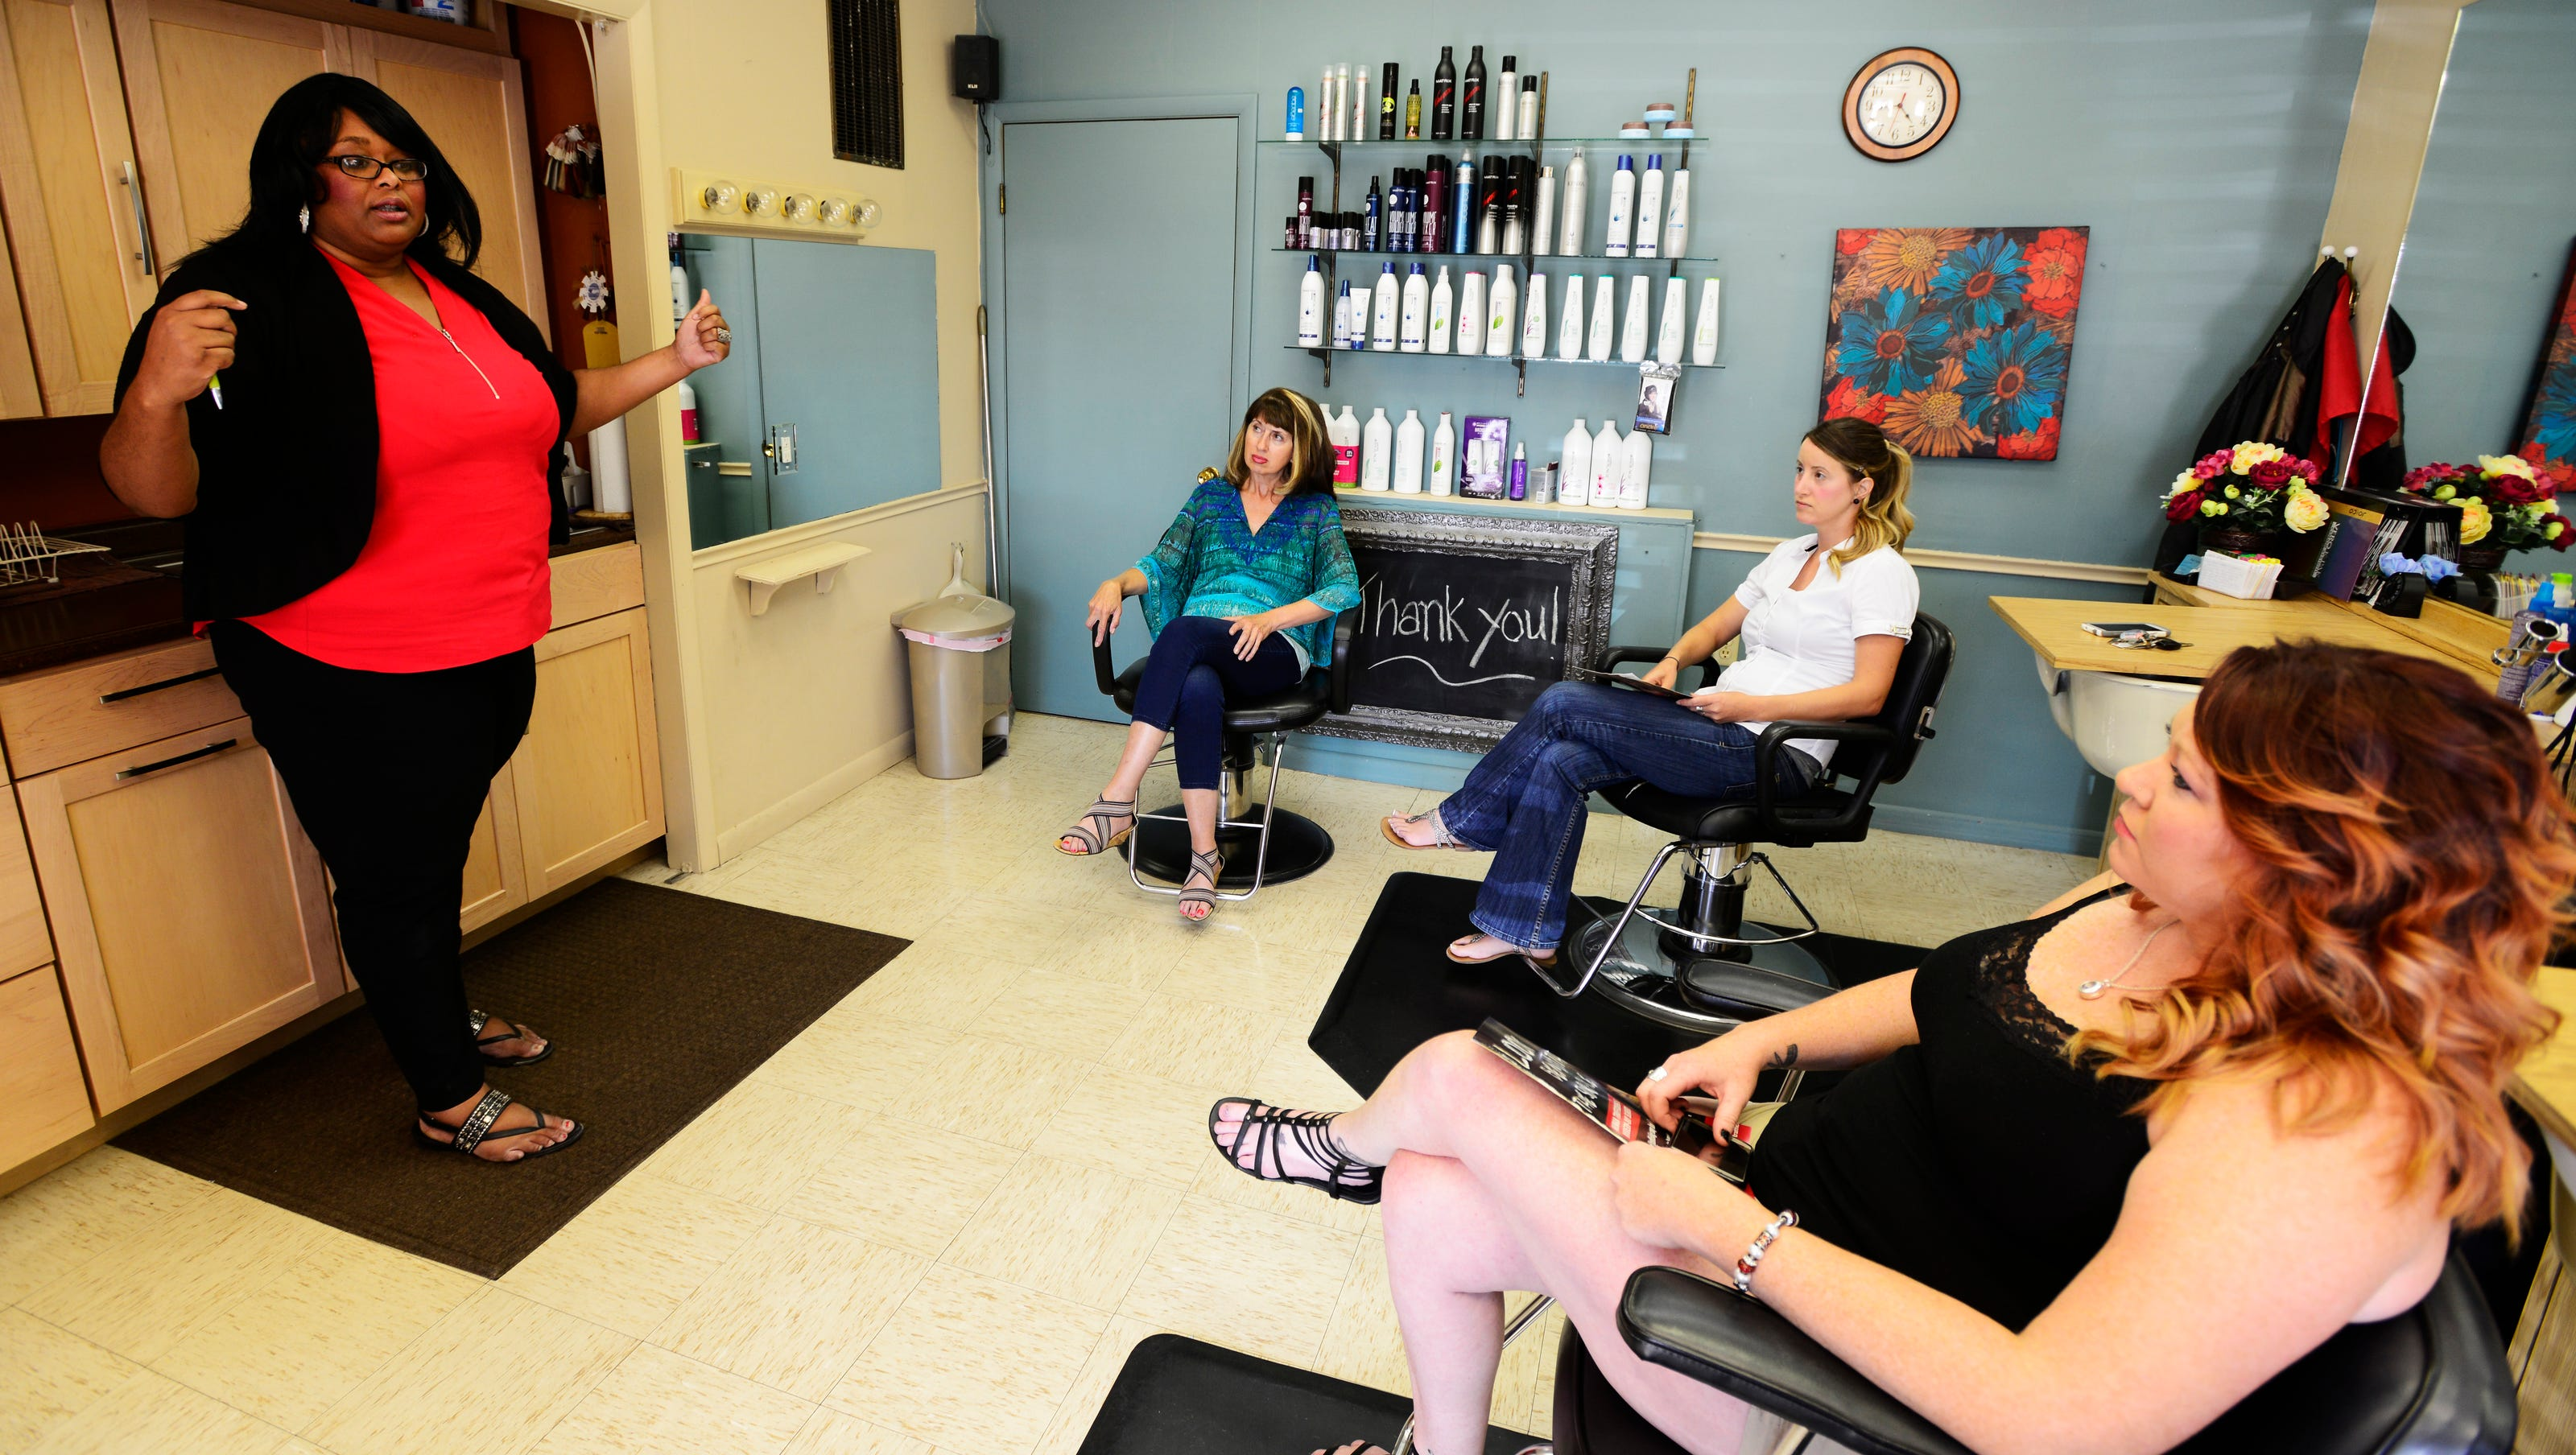 Merriweather Shows Cosmetologists Signs Of Human Trafficking